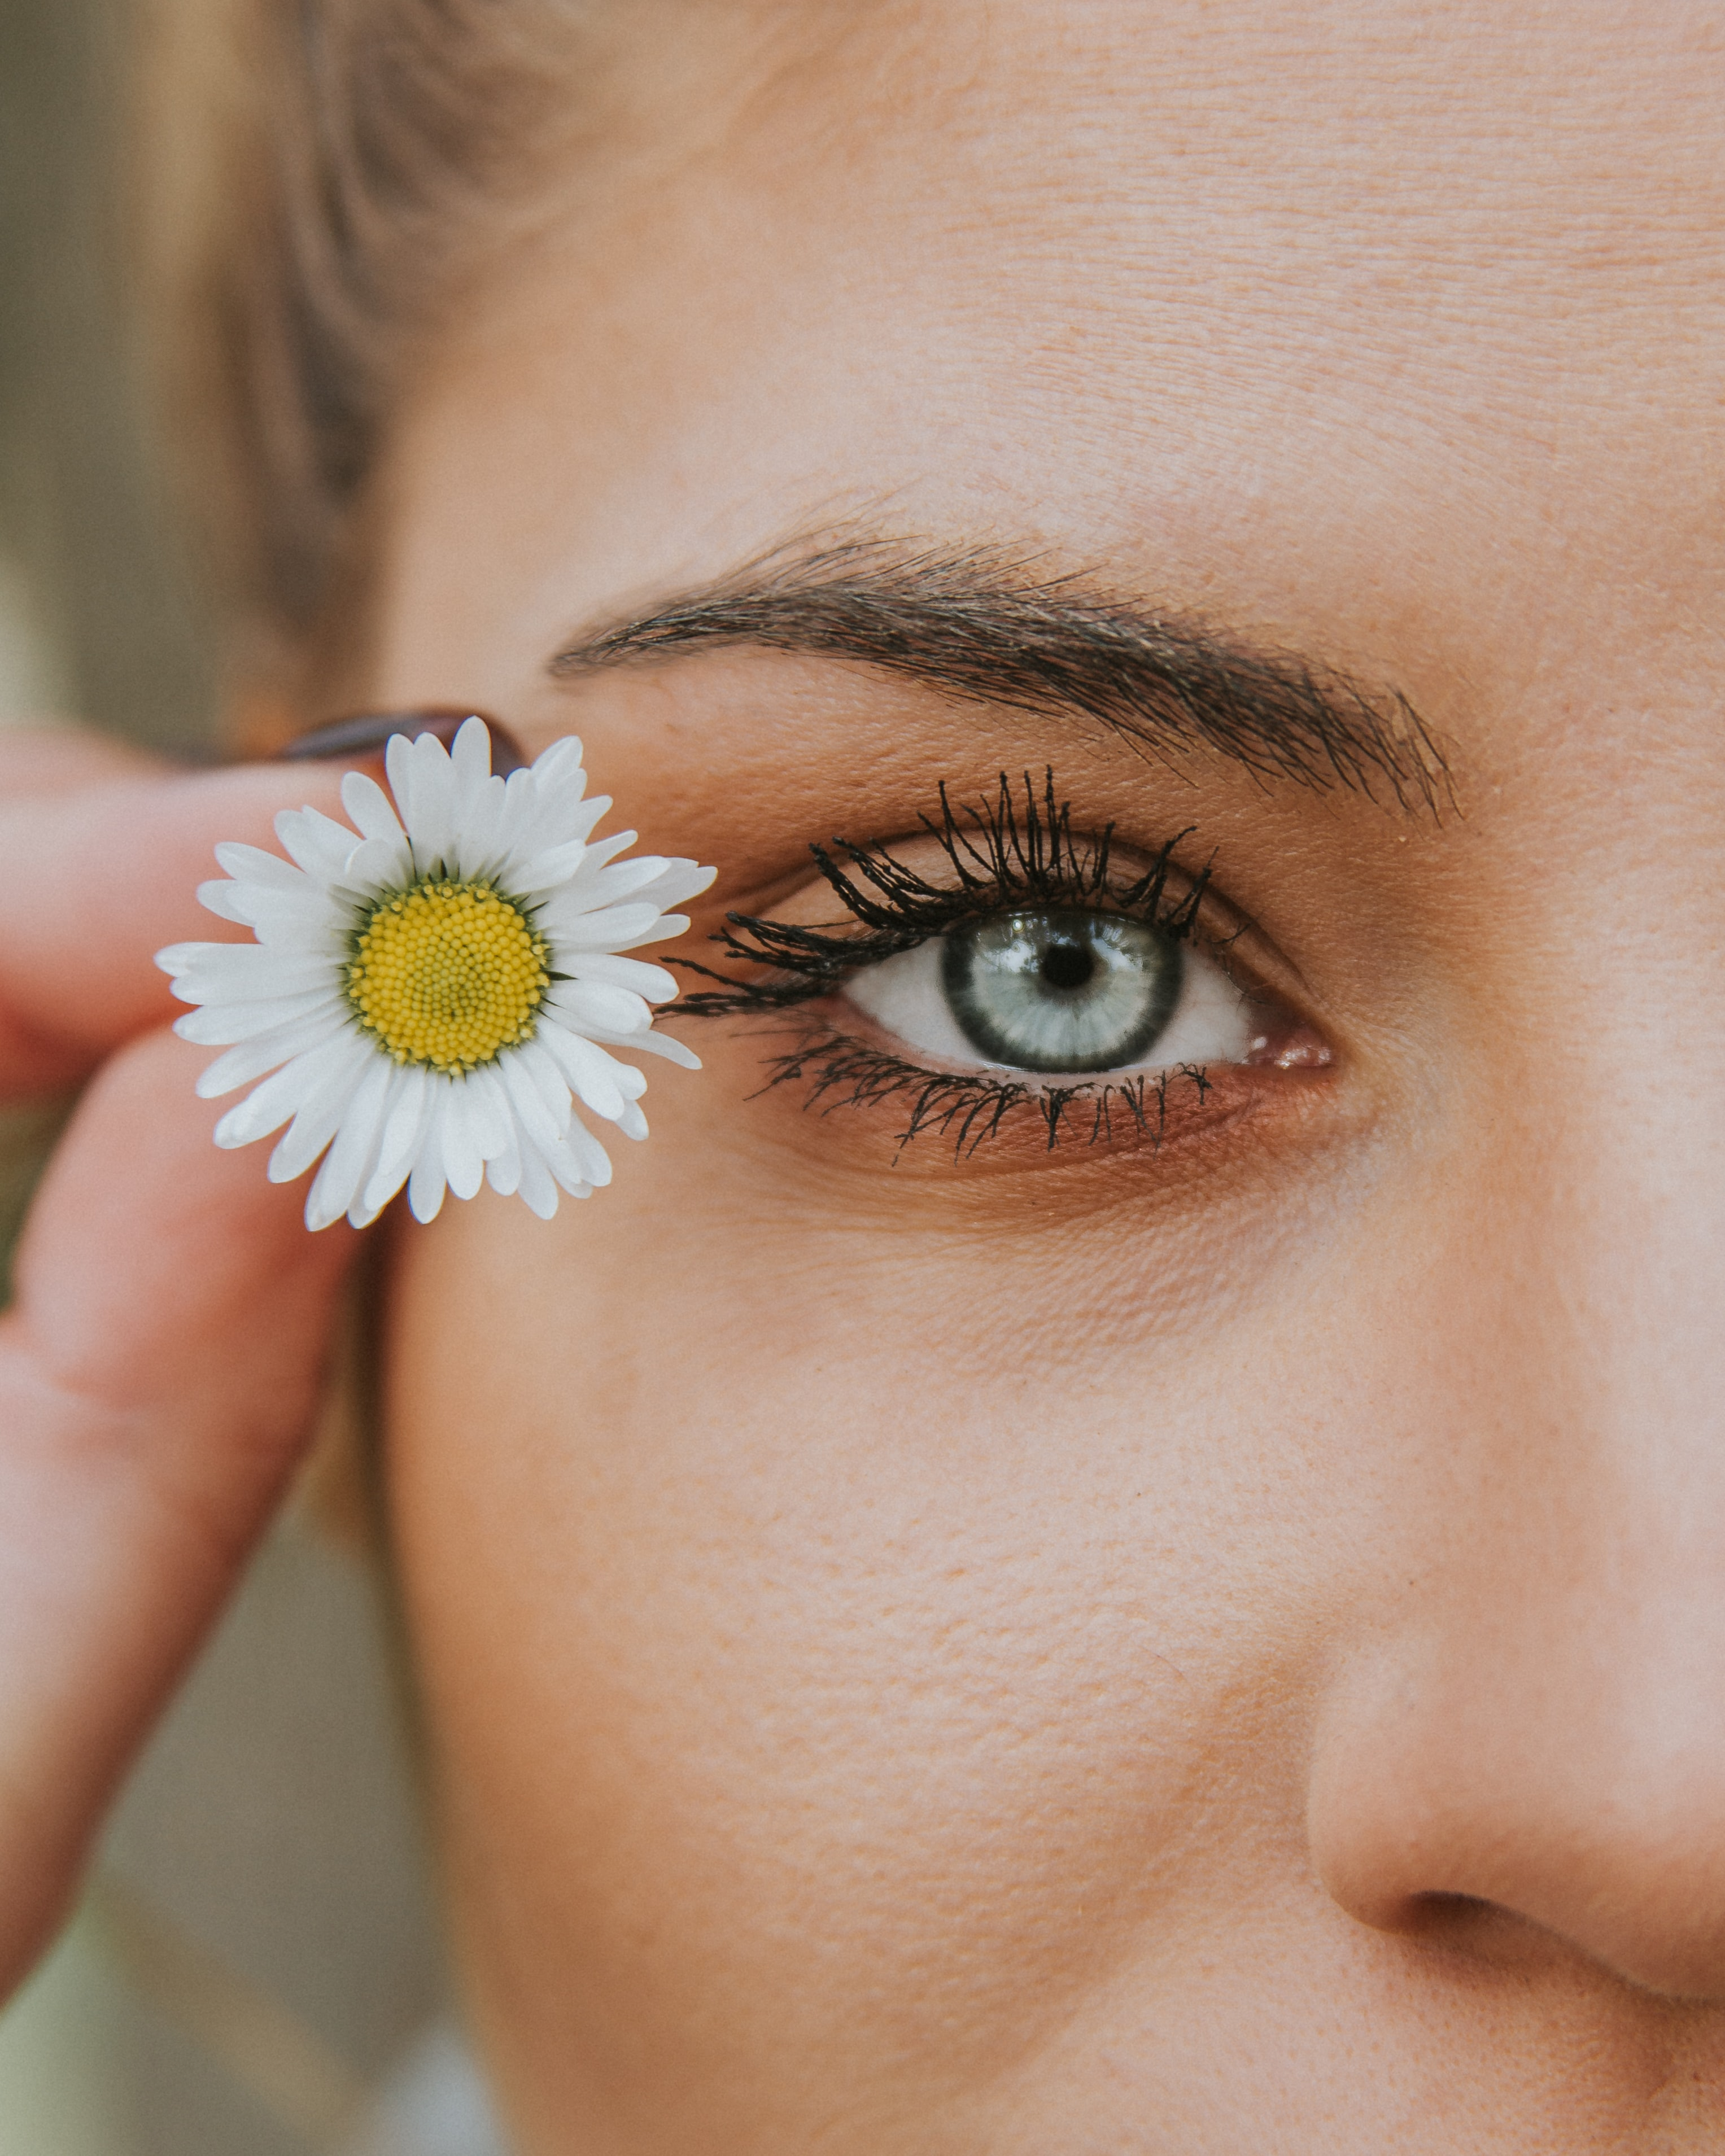 white petaled flower near woman eye